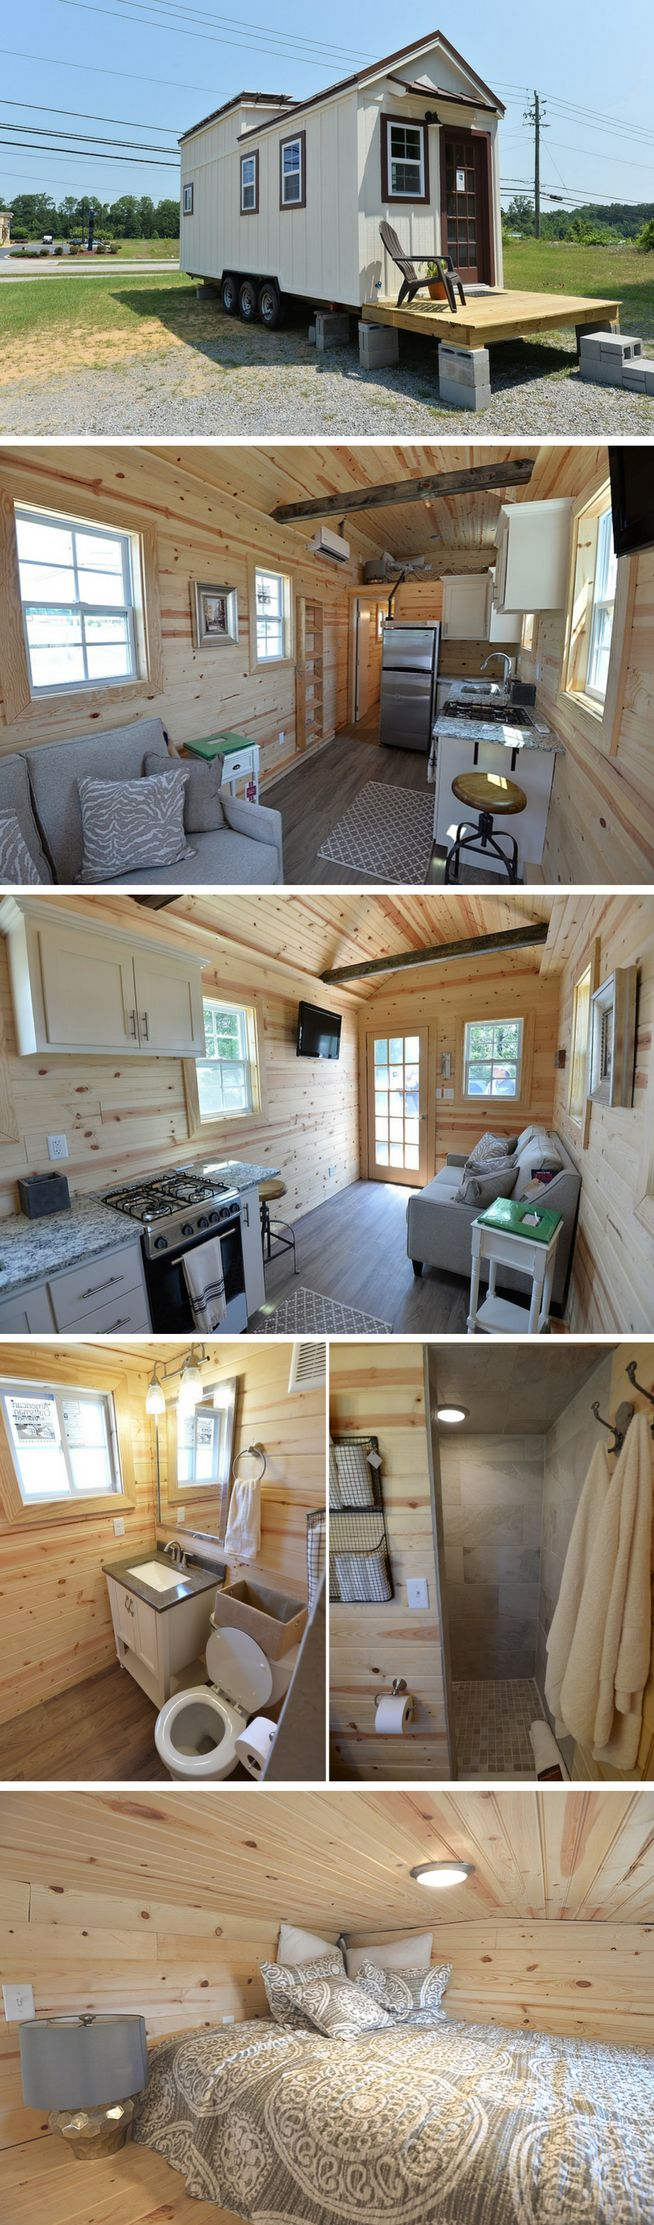 1729 best tiny house images on pinterest tiny house living tiny a 265 sq ft tiny house with solar panels